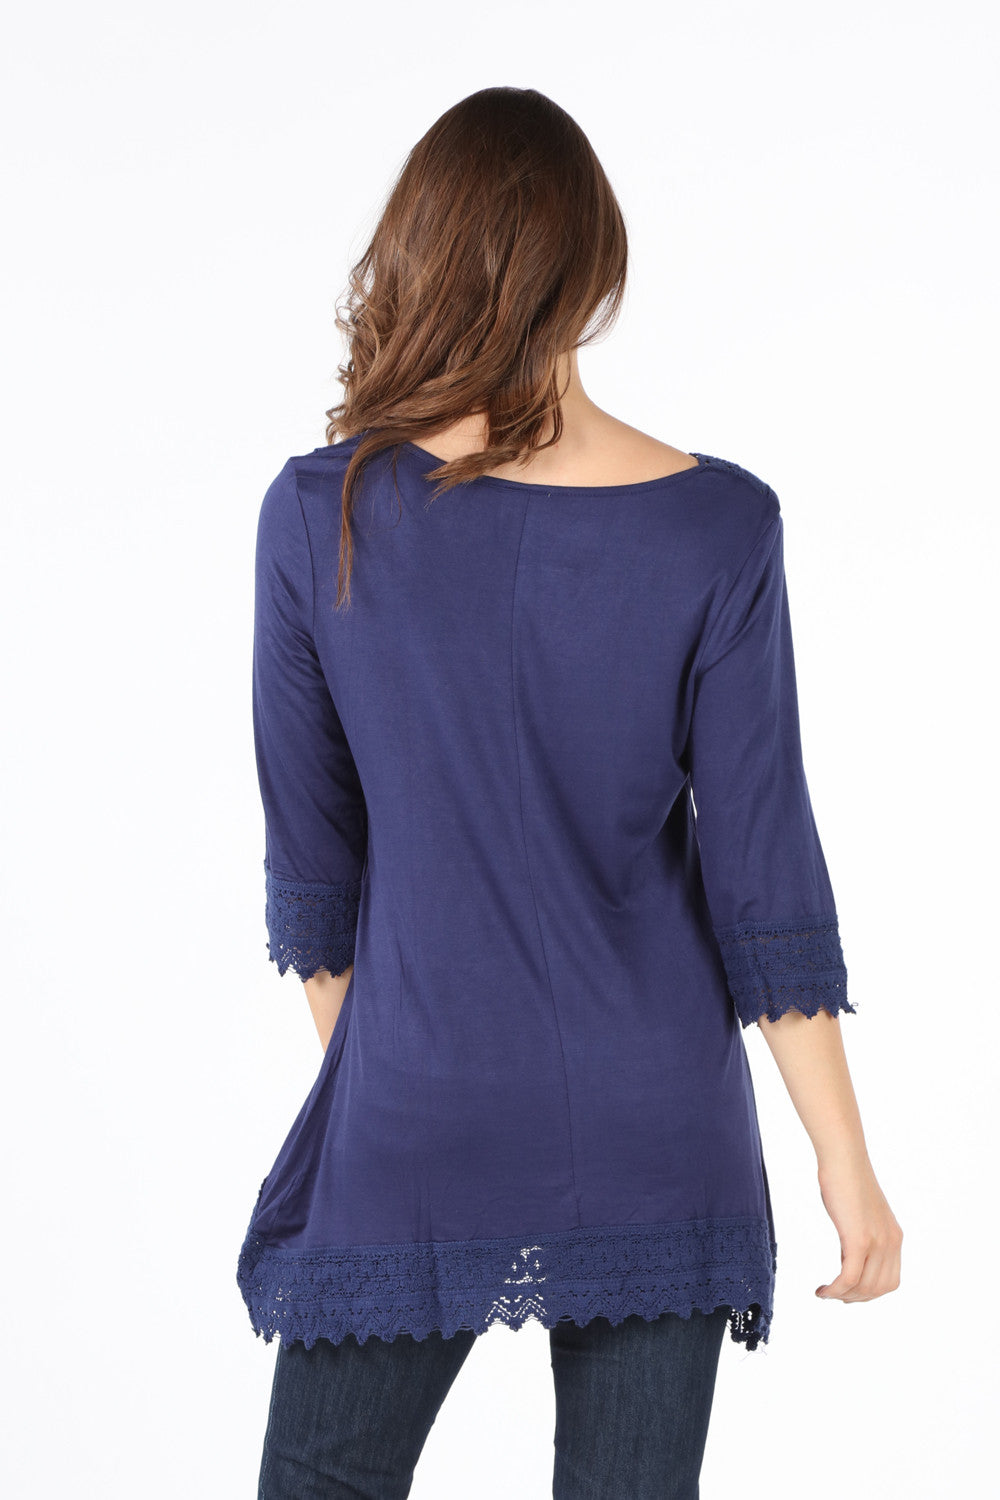 8052K Navy Crochet V-Neck Tunic